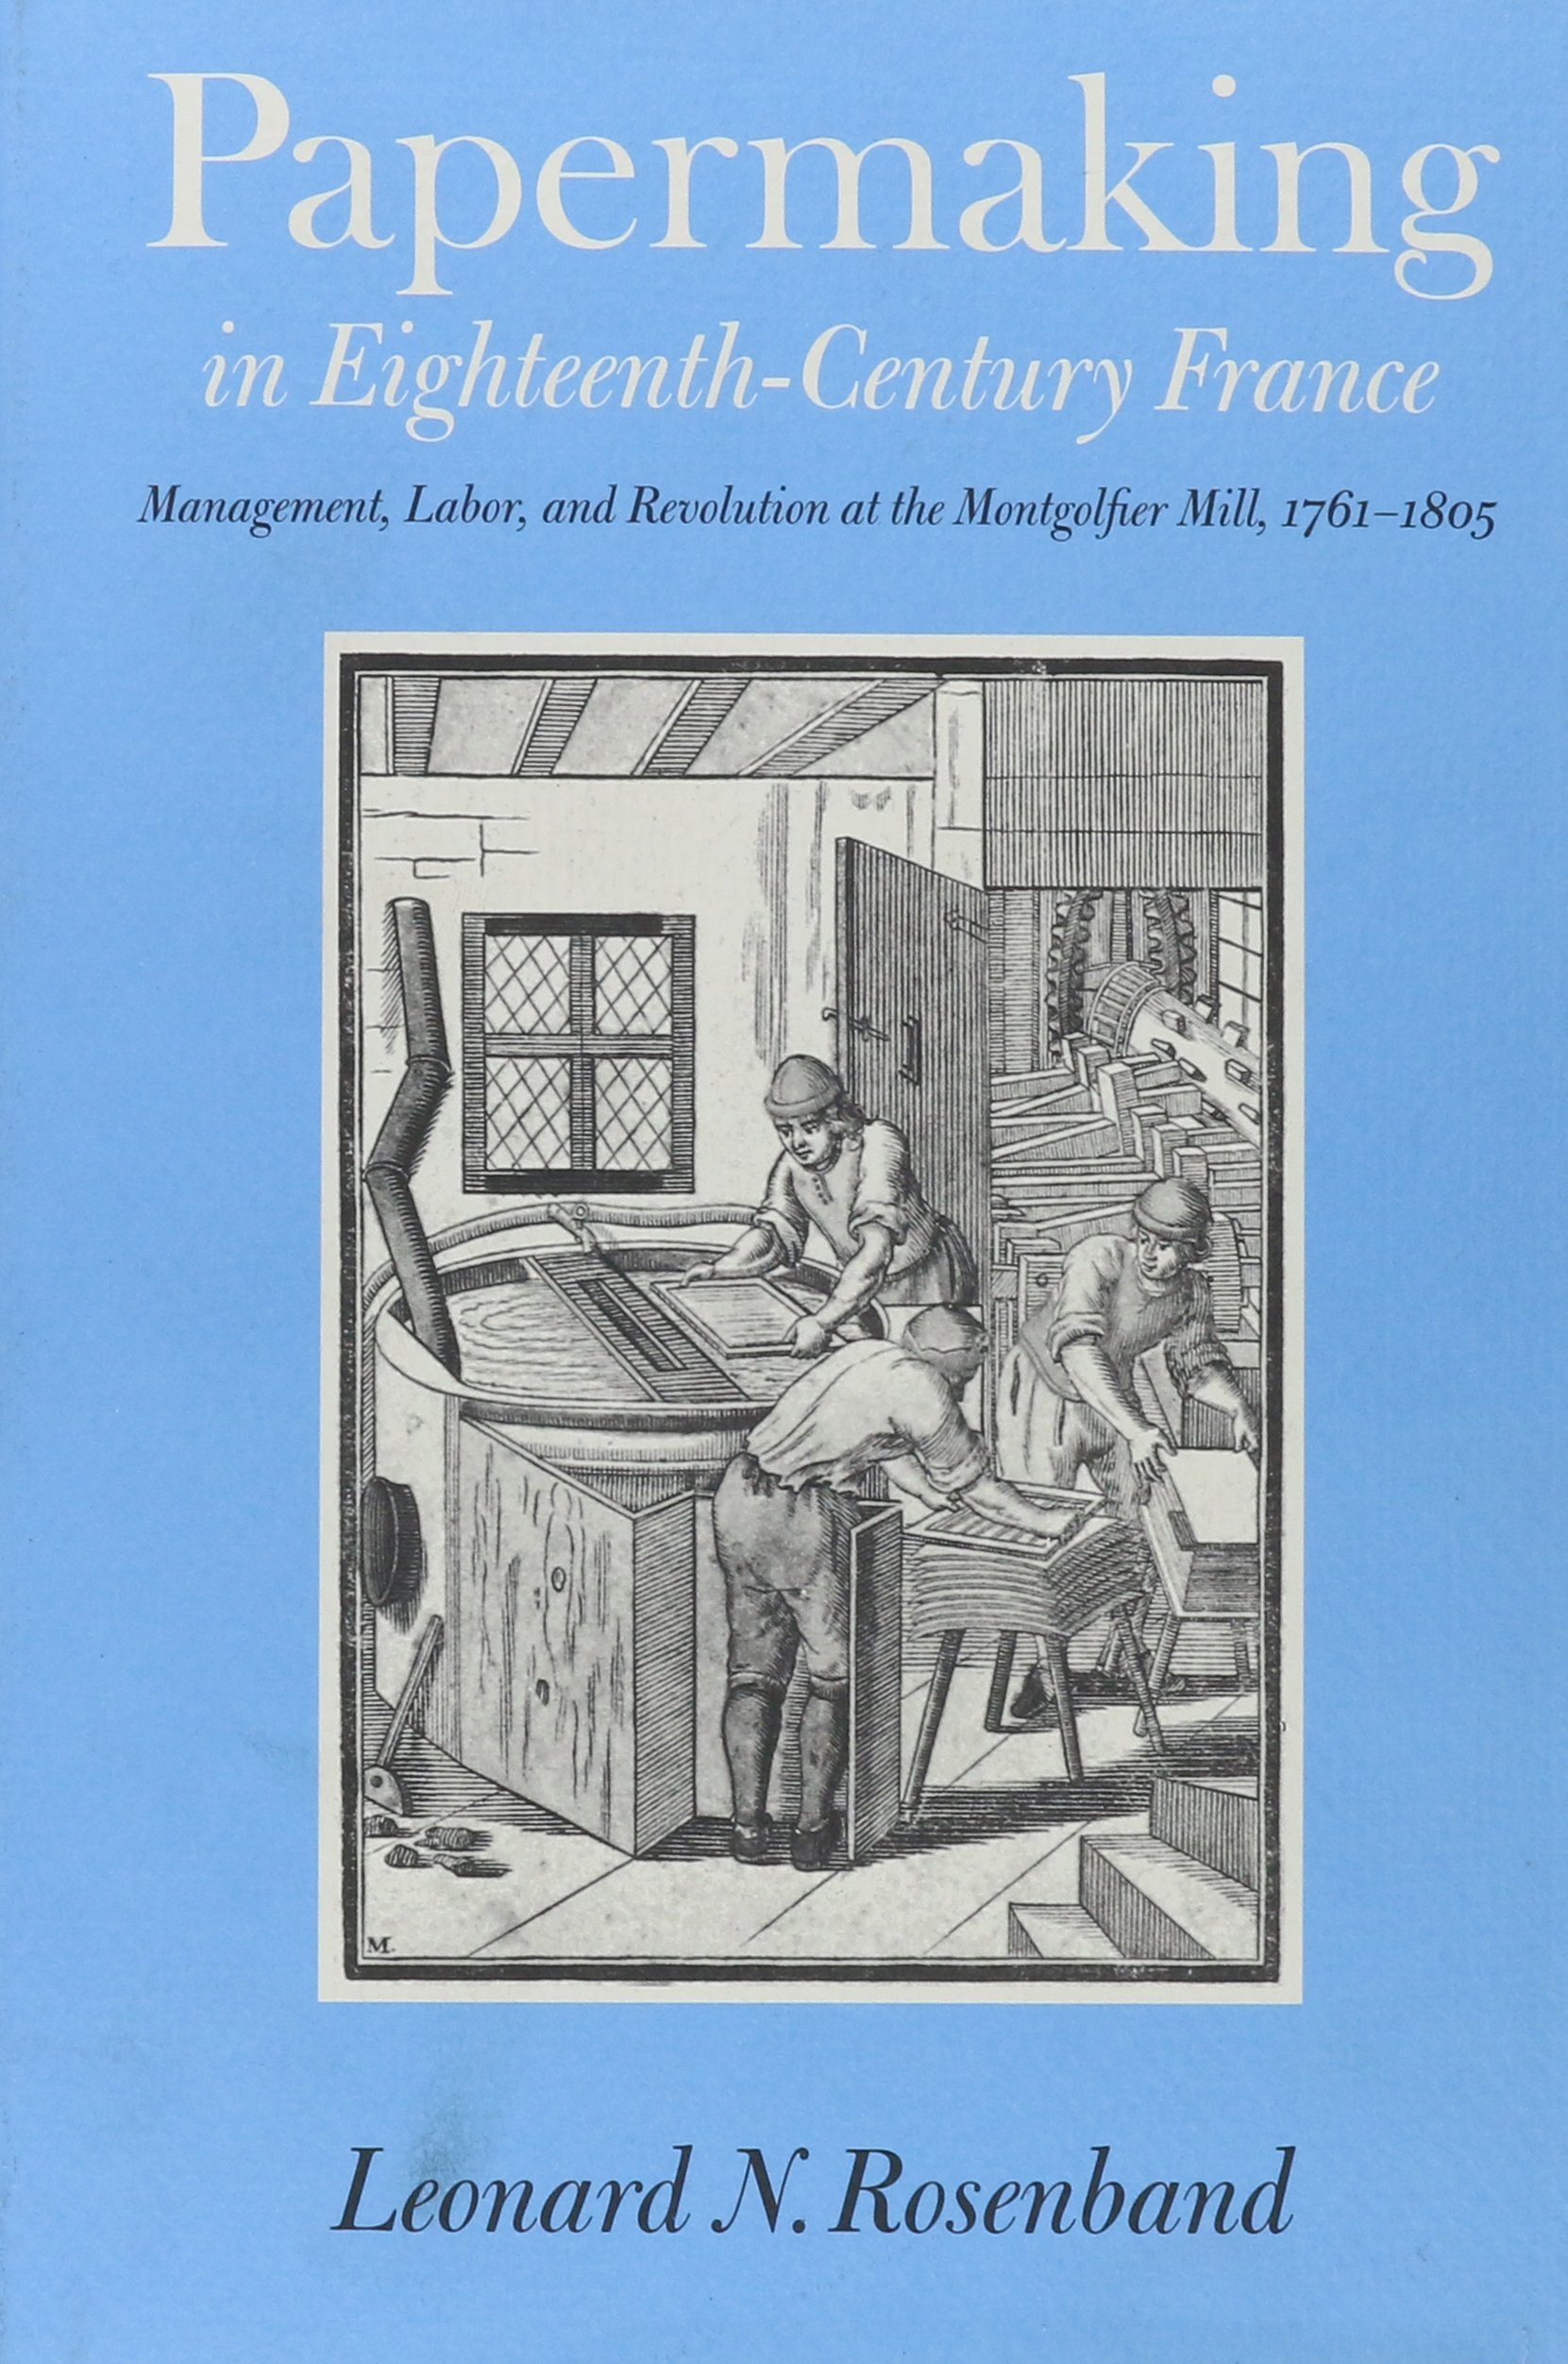 Download Papermaking in Eighteenth-Century France: Management, Labor, and Revolution at the Montgolfier Mill, 1761-1805 PDF